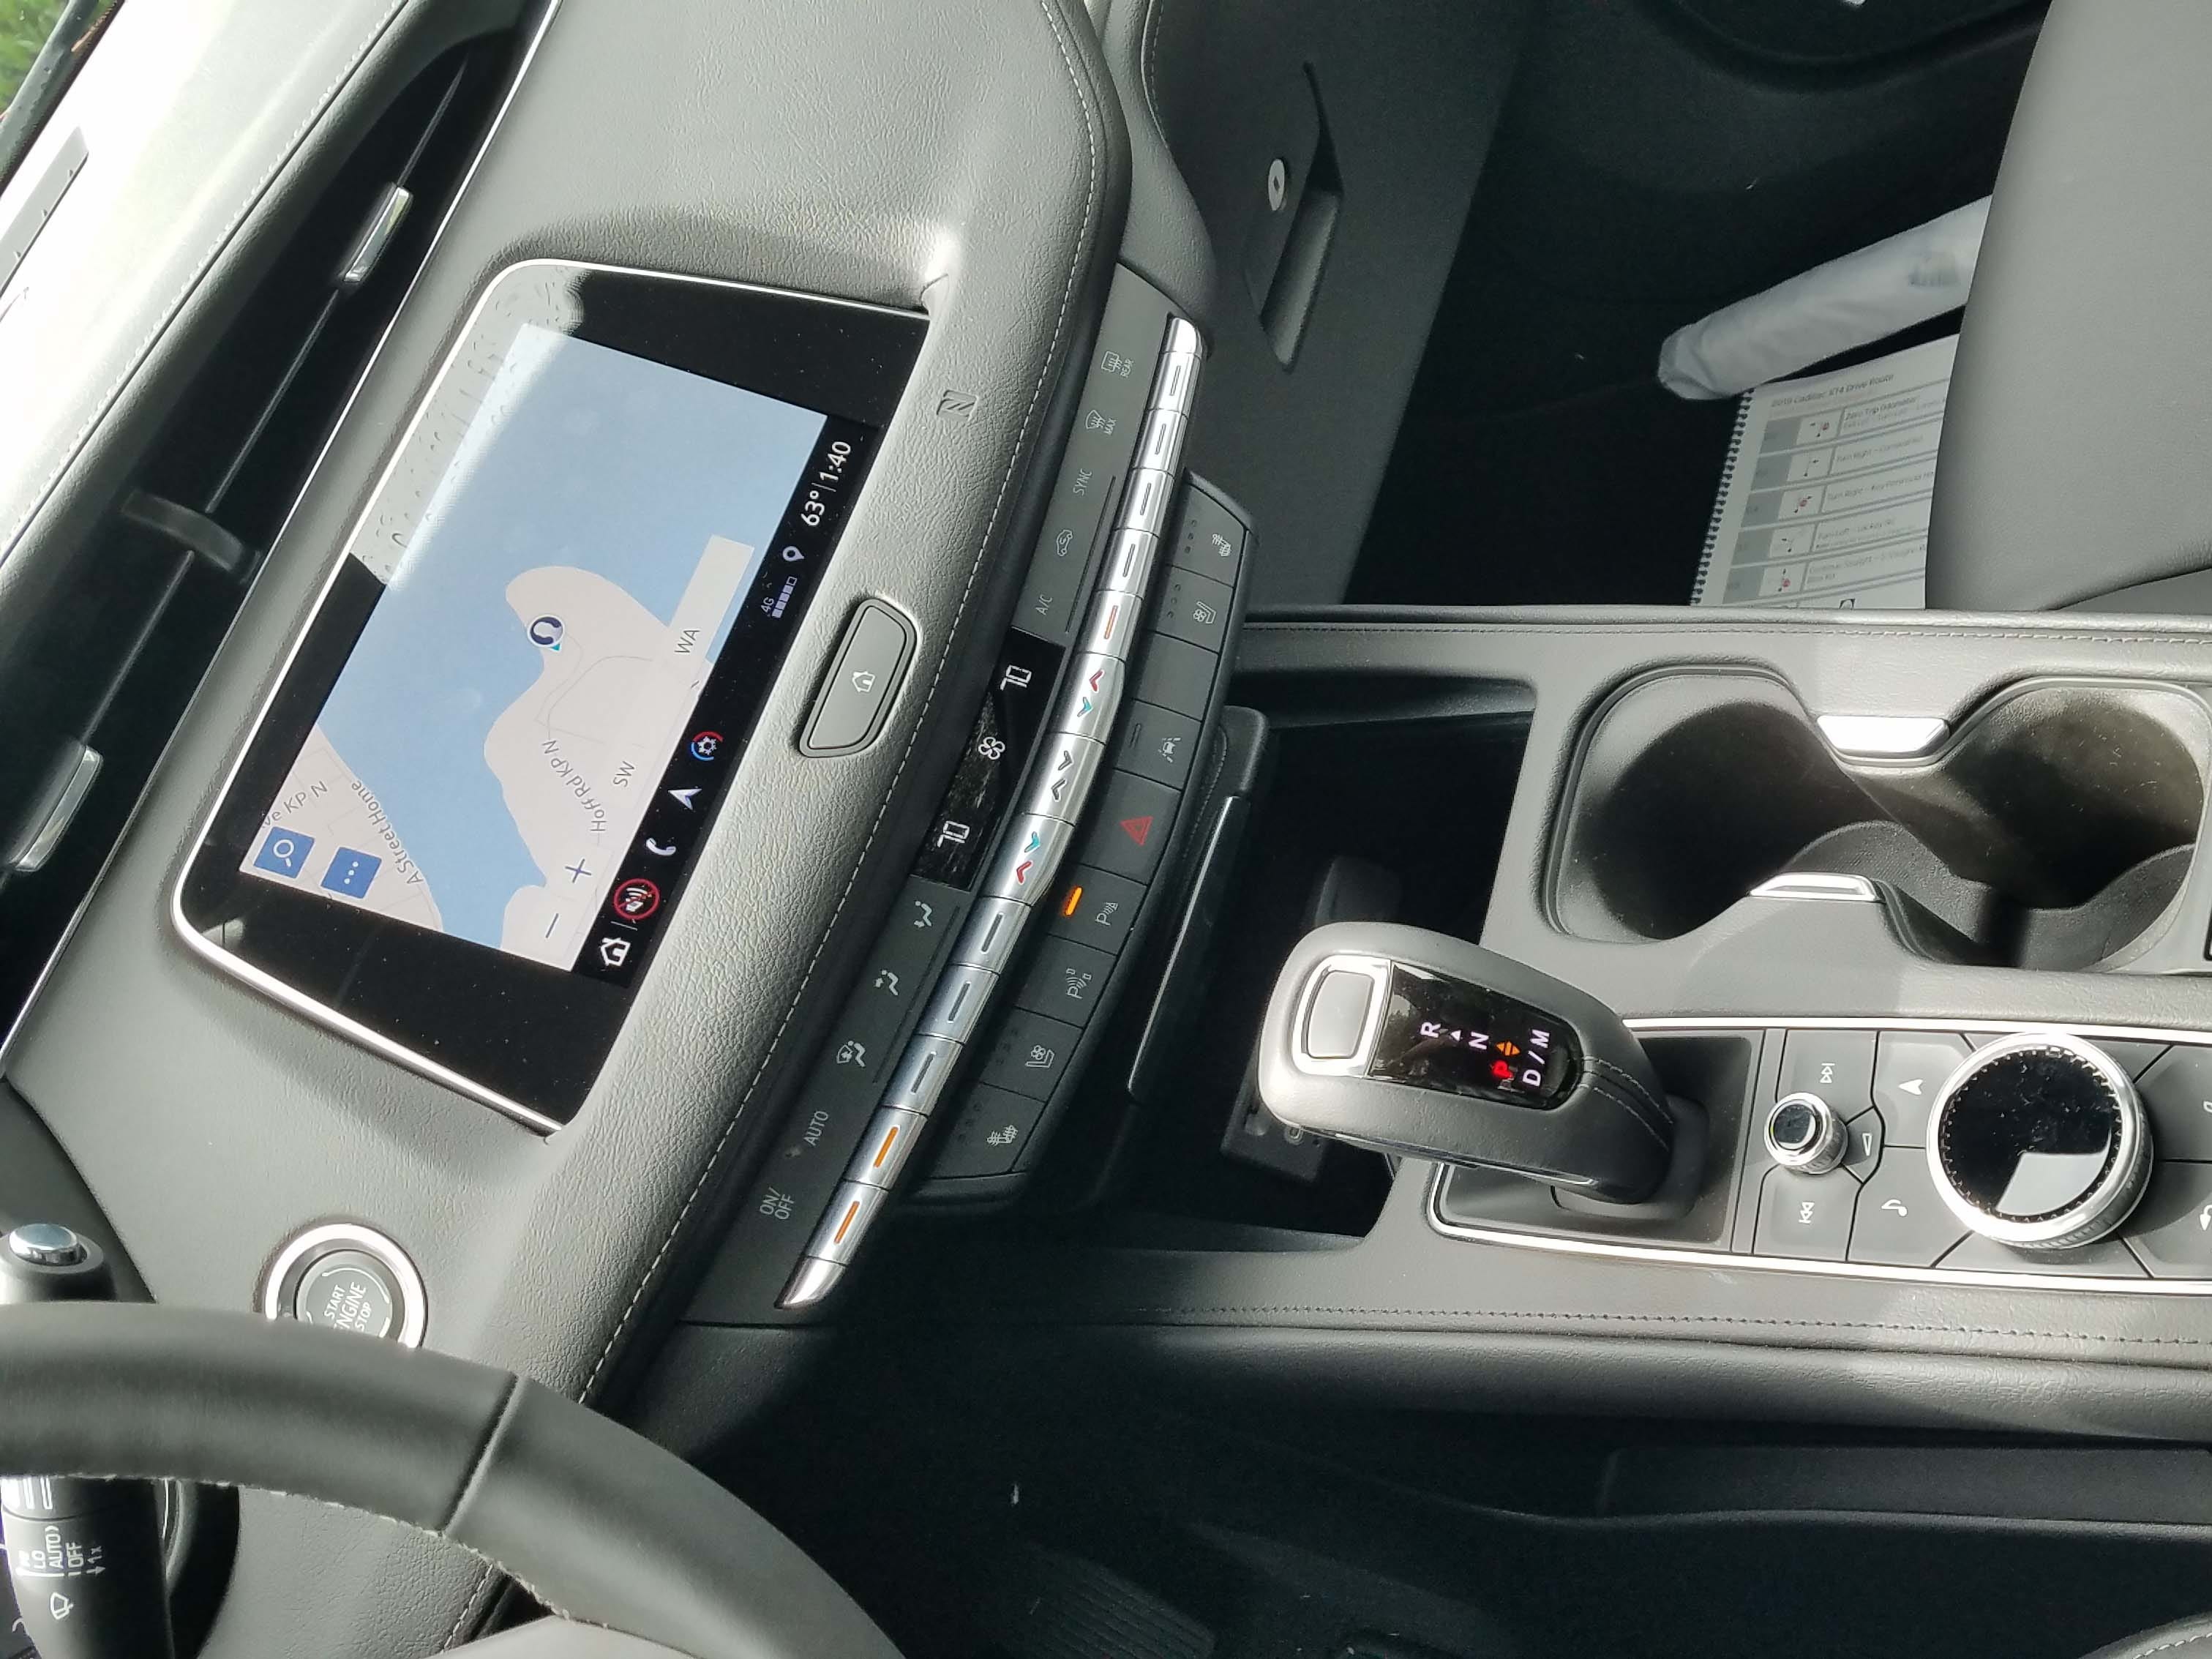 Room to spare. The 2019 Cadillac XT4 ute features a cleverly engineered center console that can hold two cups, monostable shifter, drive controls and useful cubby space.